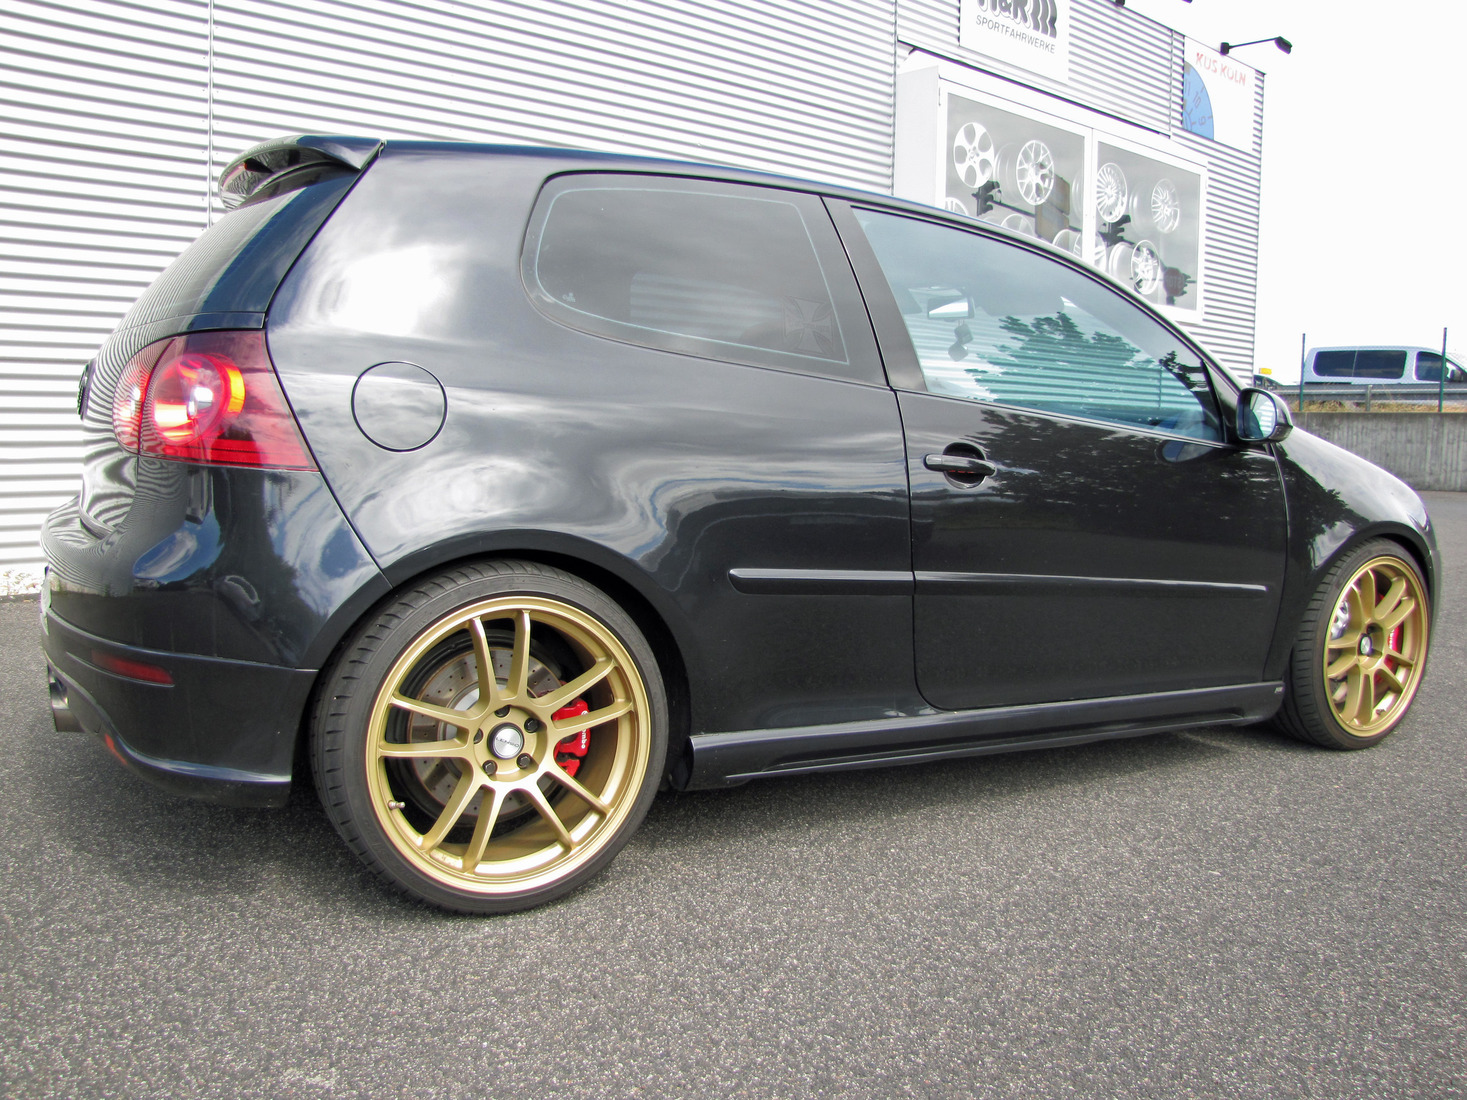 vw golf 5 gti mit 4 kolben brembo bremse sat. Black Bedroom Furniture Sets. Home Design Ideas